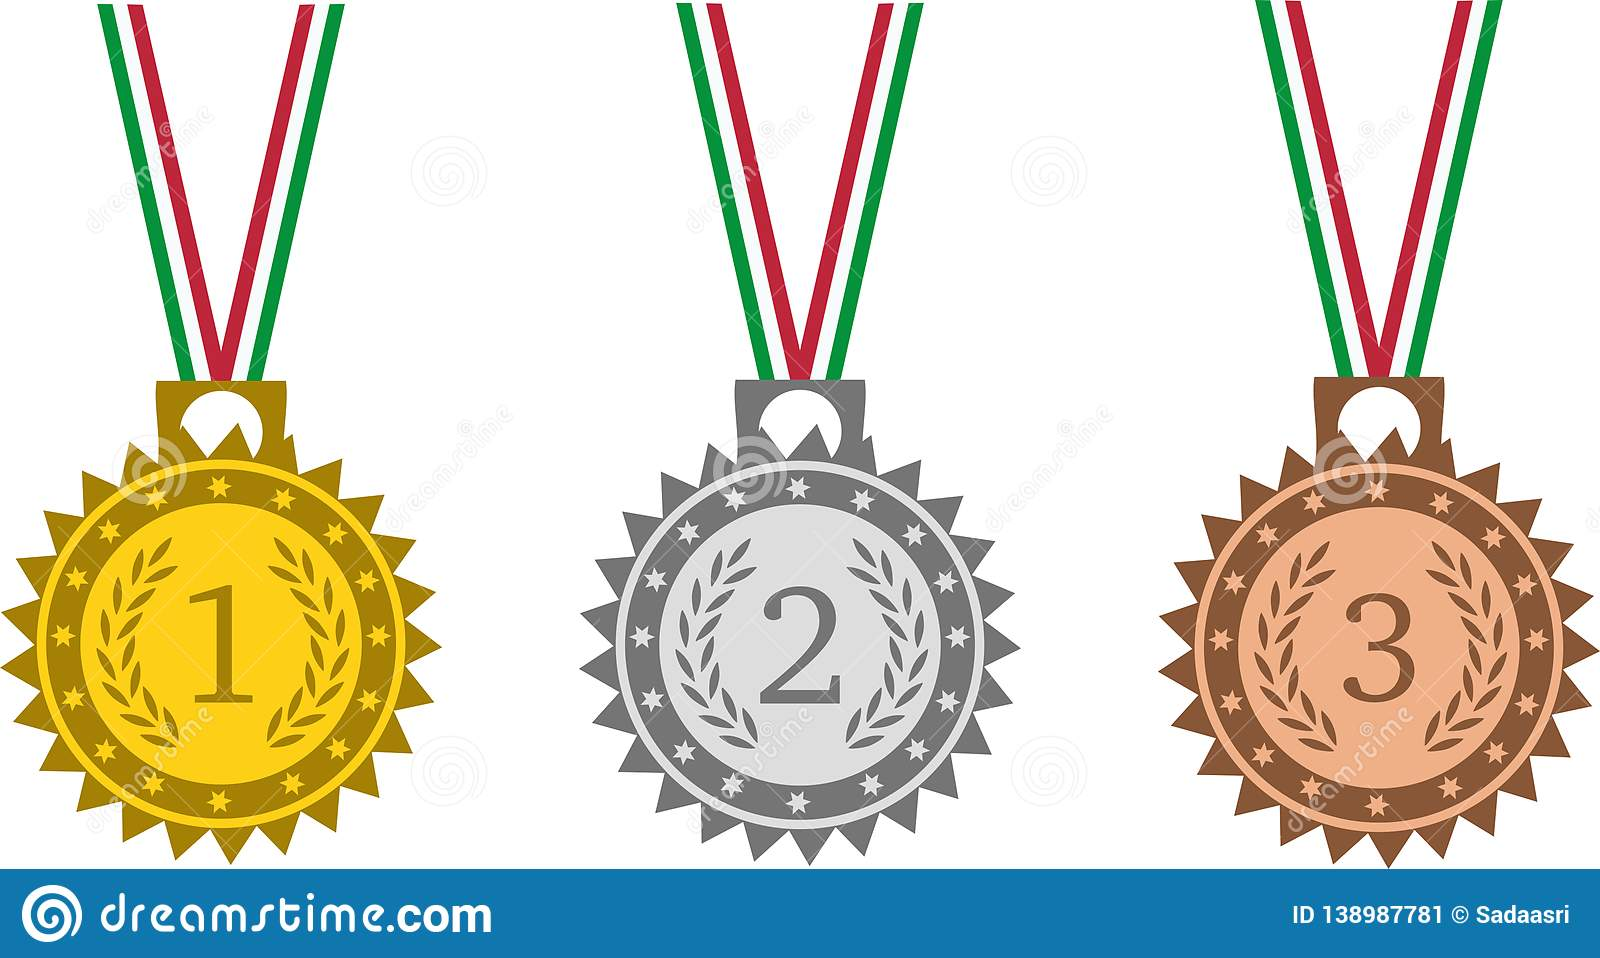 Medals set with tricolor ribbon on white background